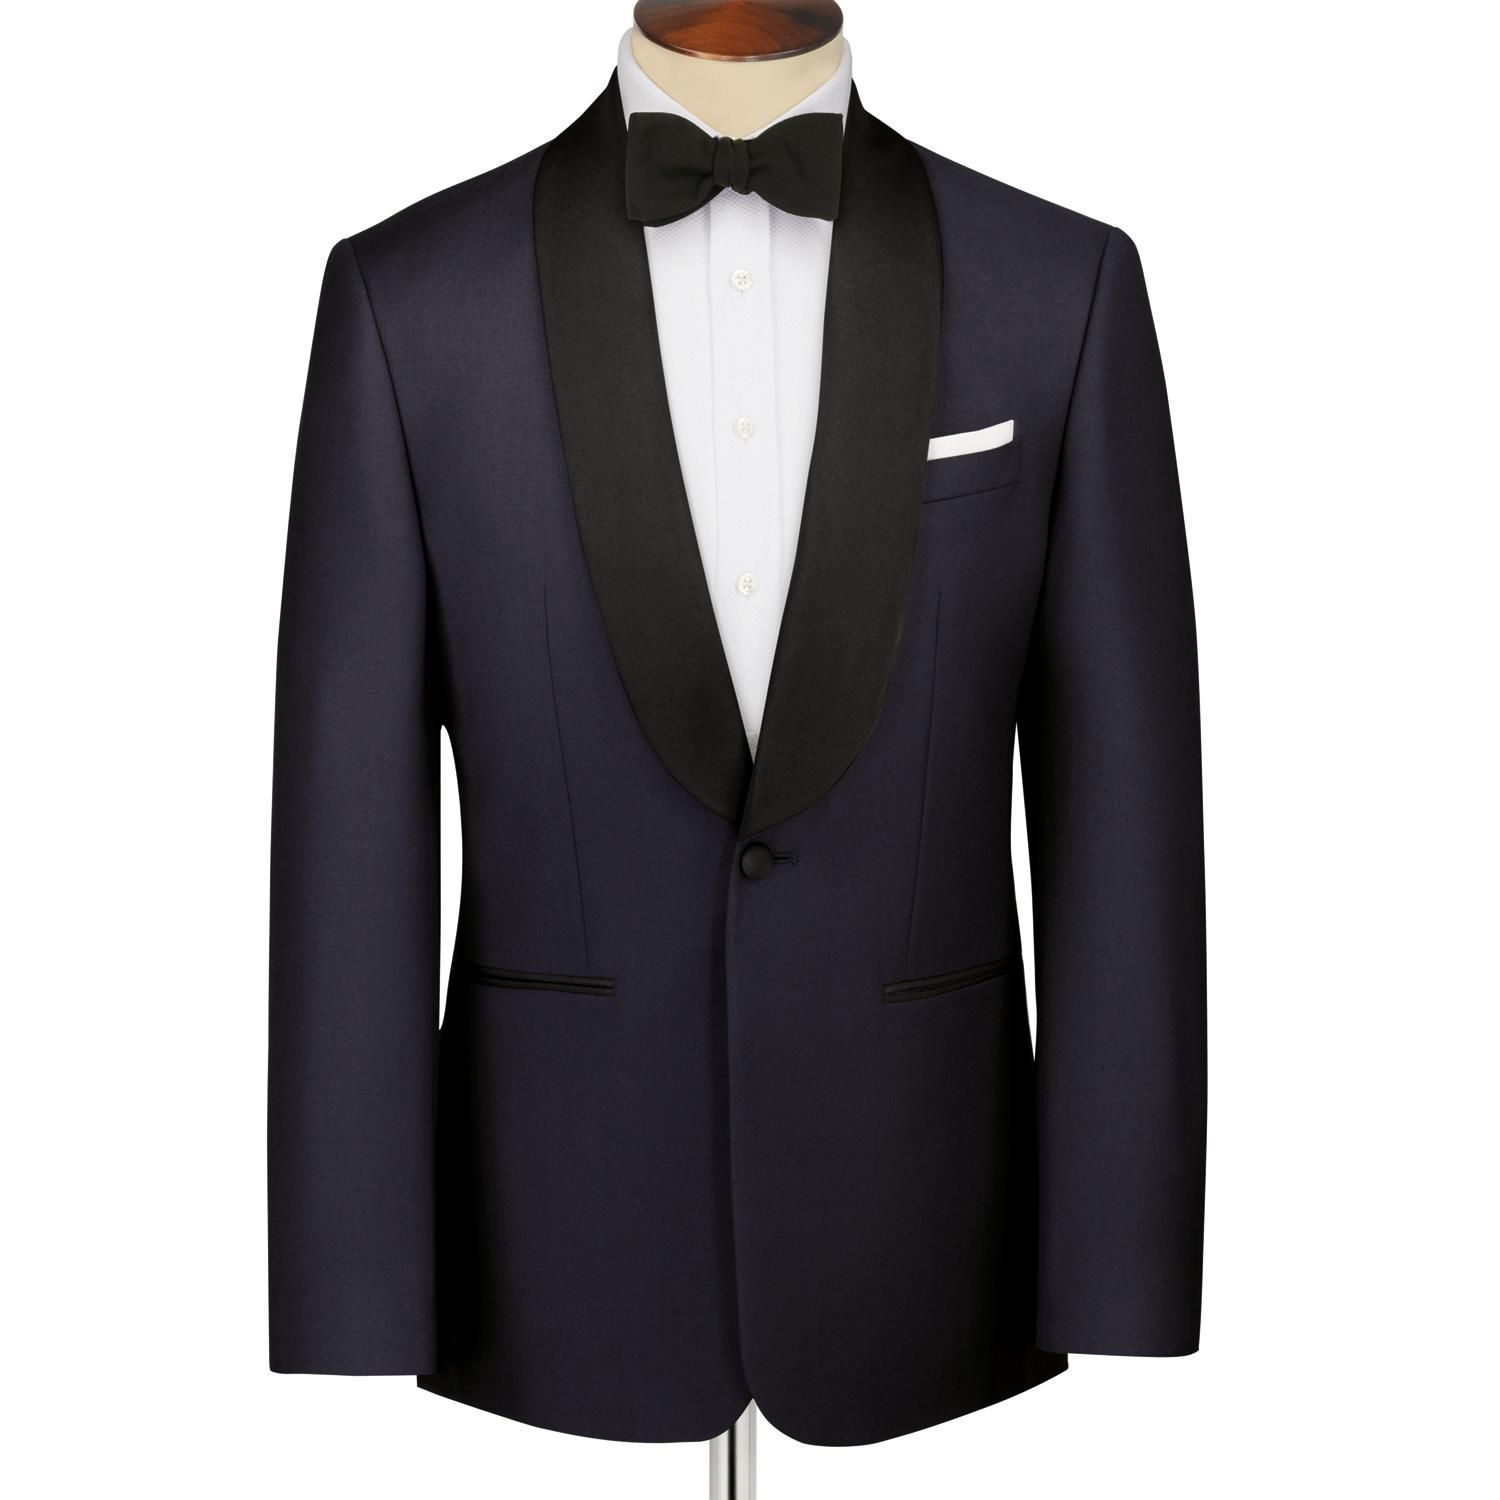 Midnight blue Slim fit shawl collar dinner suit | Men's ...